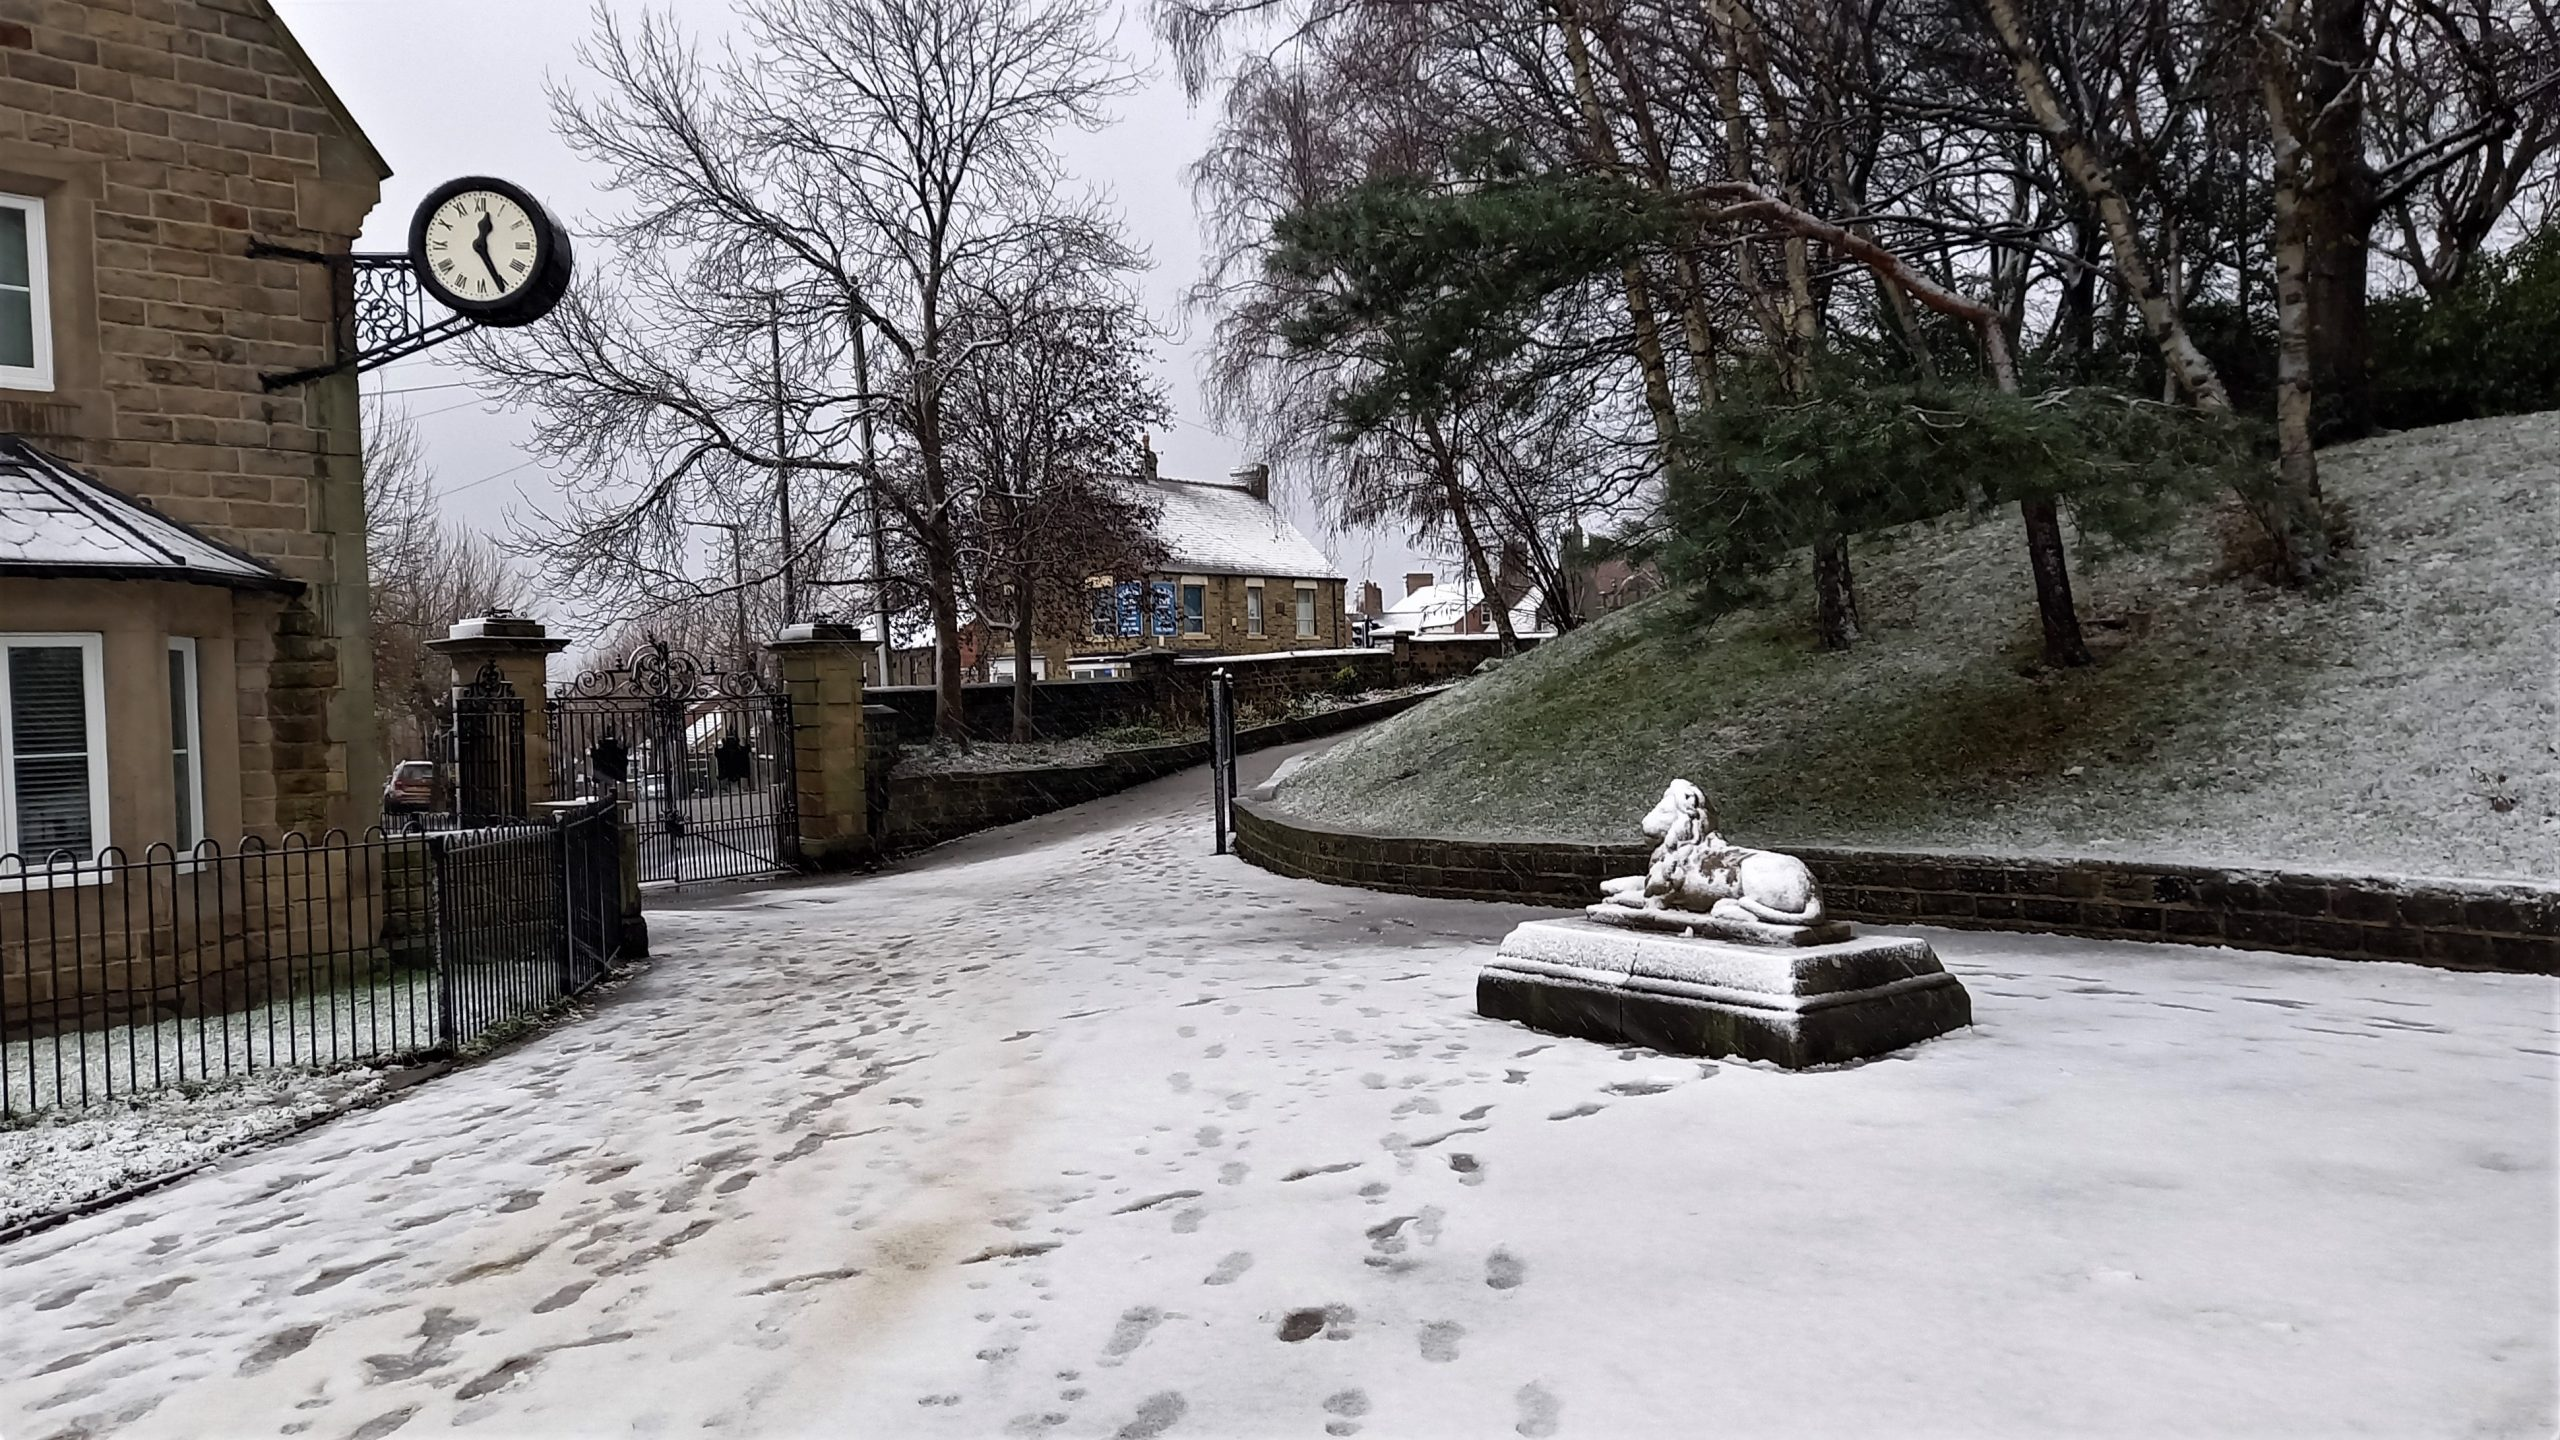 10 Lion, lodge and gate in snow